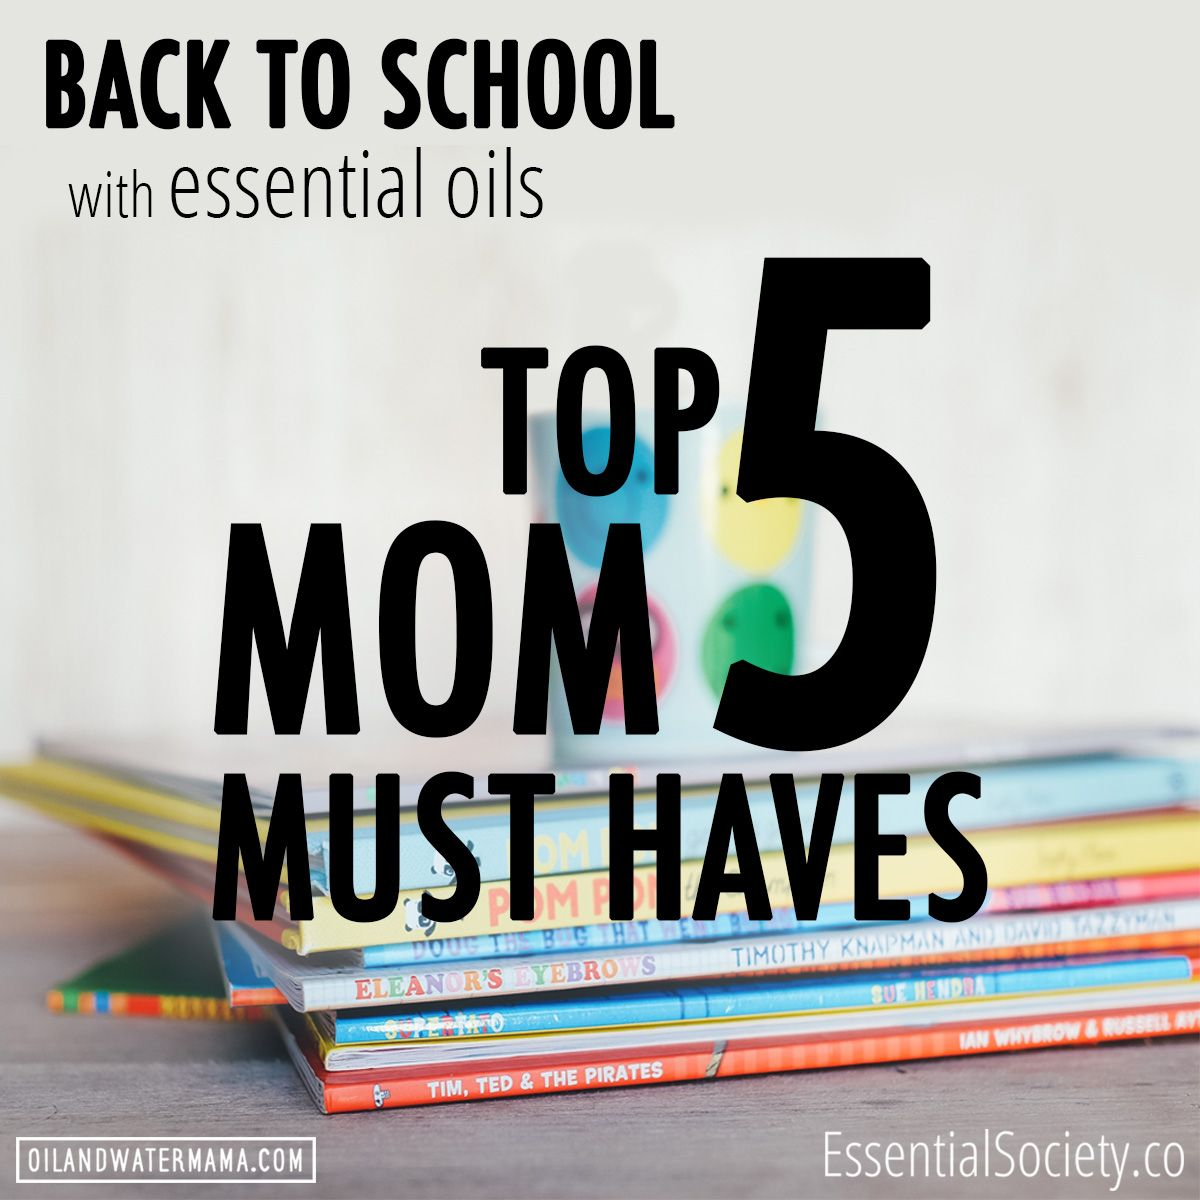 Back To School Season is here! We've got the Must Have List of what the moms on our Team use to survive the school year. Head to the blog at Essentialsociety.co